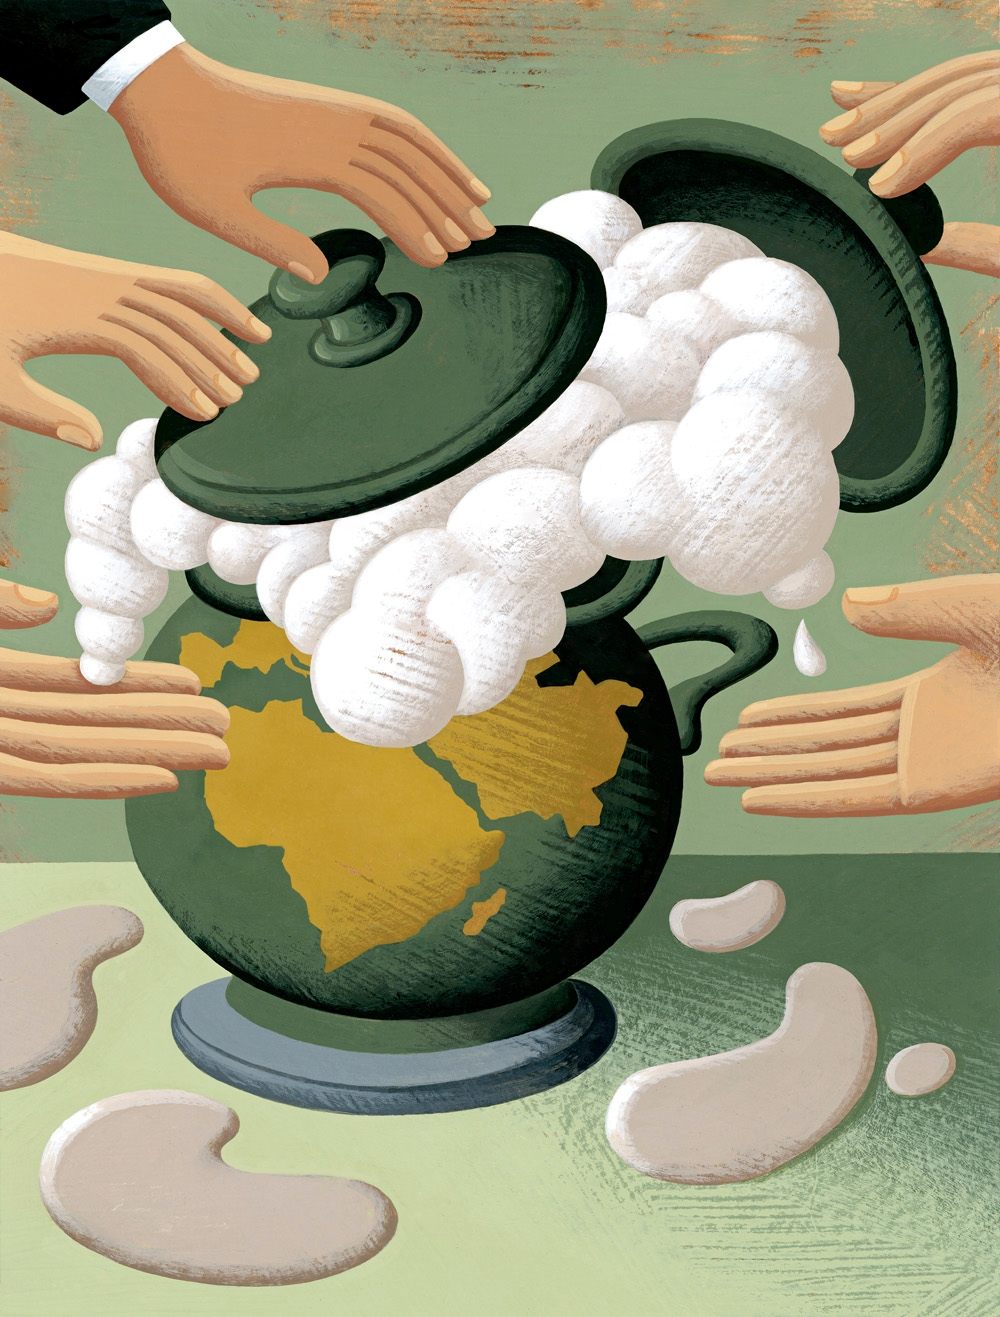 Boiling - boiling,#pot,#world,#politics,#global,#crisis - nikad | ello